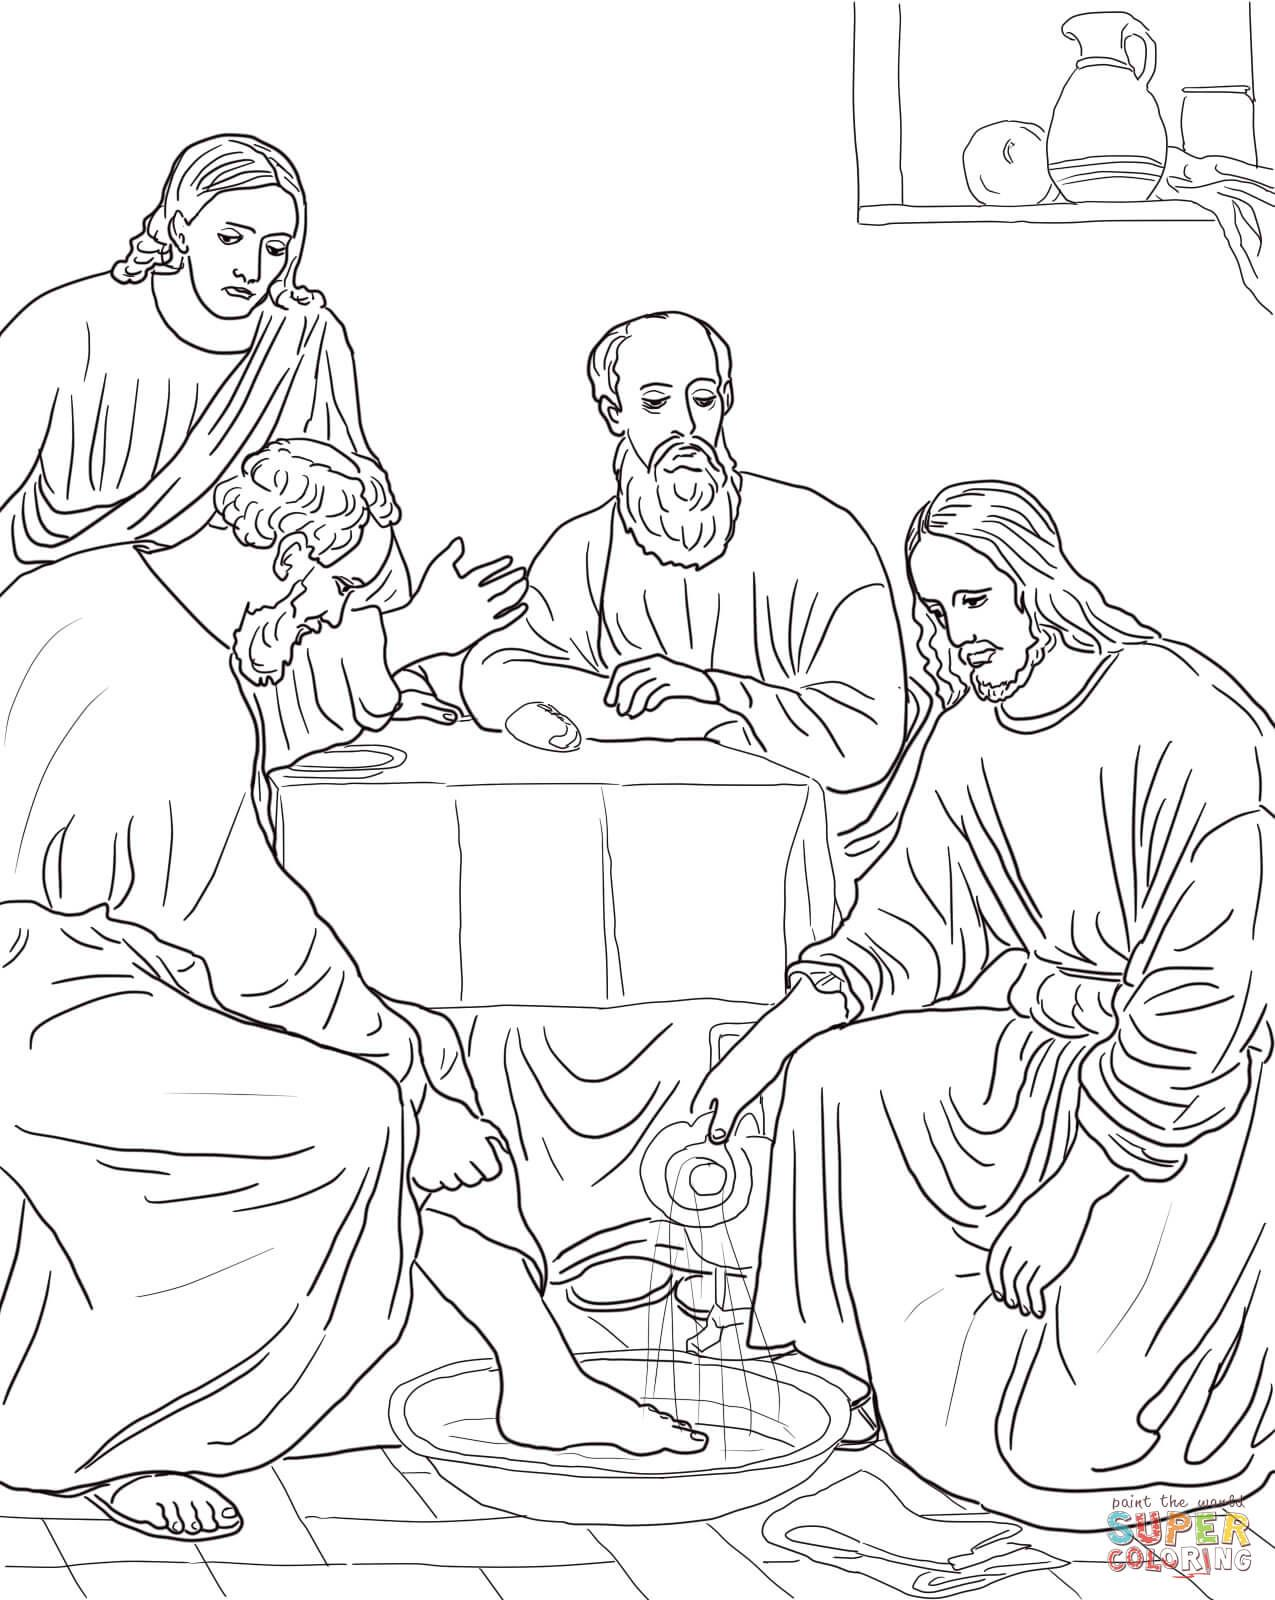 Jesus Washing The Disciples Feet Super Coloring Bible Coloring Pages Jesus Coloring Pages Sunday School Coloring Pages